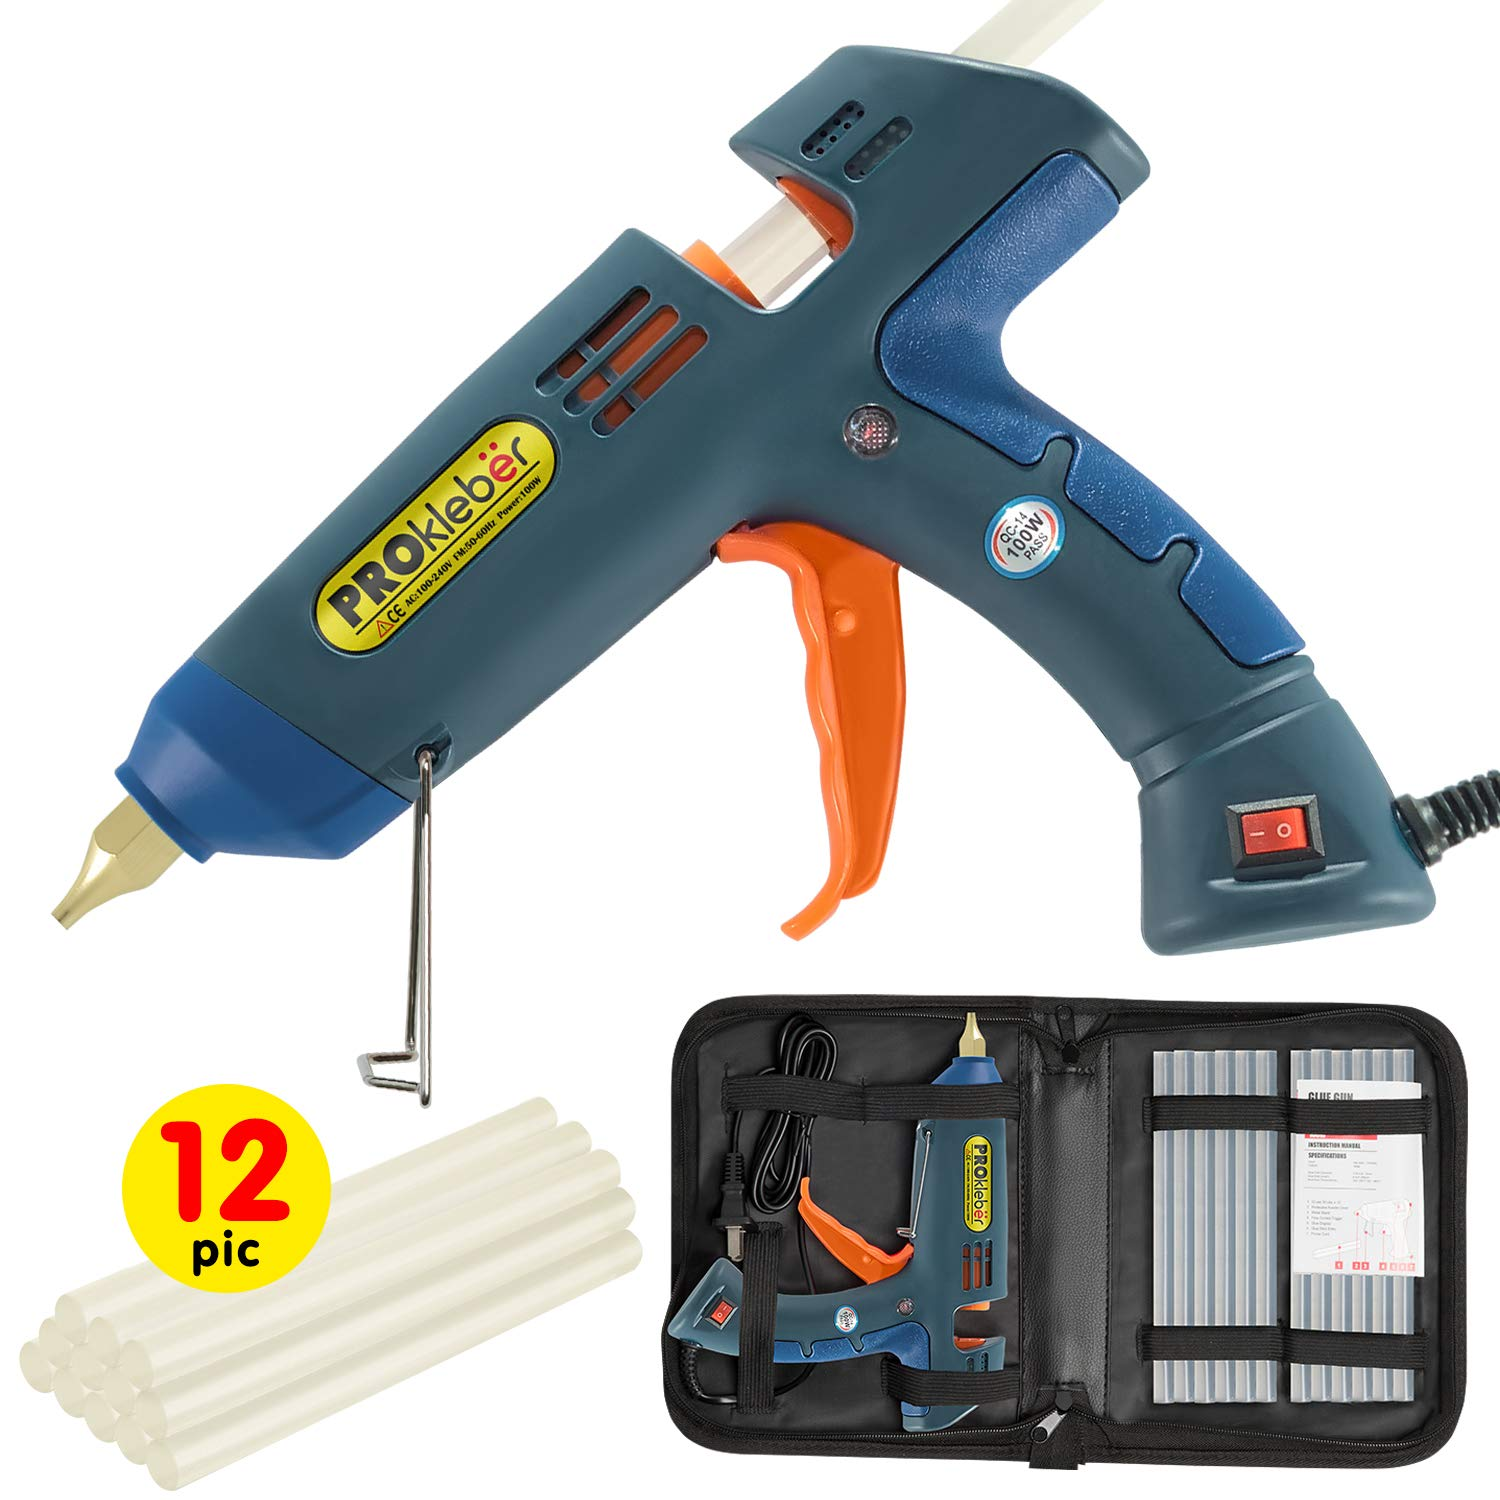 Hot Melt Glue Gun Kit 100 Watt with Carry Bag and 12 pcs Glue Sticks, for DIY, Arts & Crafts Projects, Sealing and Quick Repairs, Light and Heavy Duty in Home and Office by PROkleber